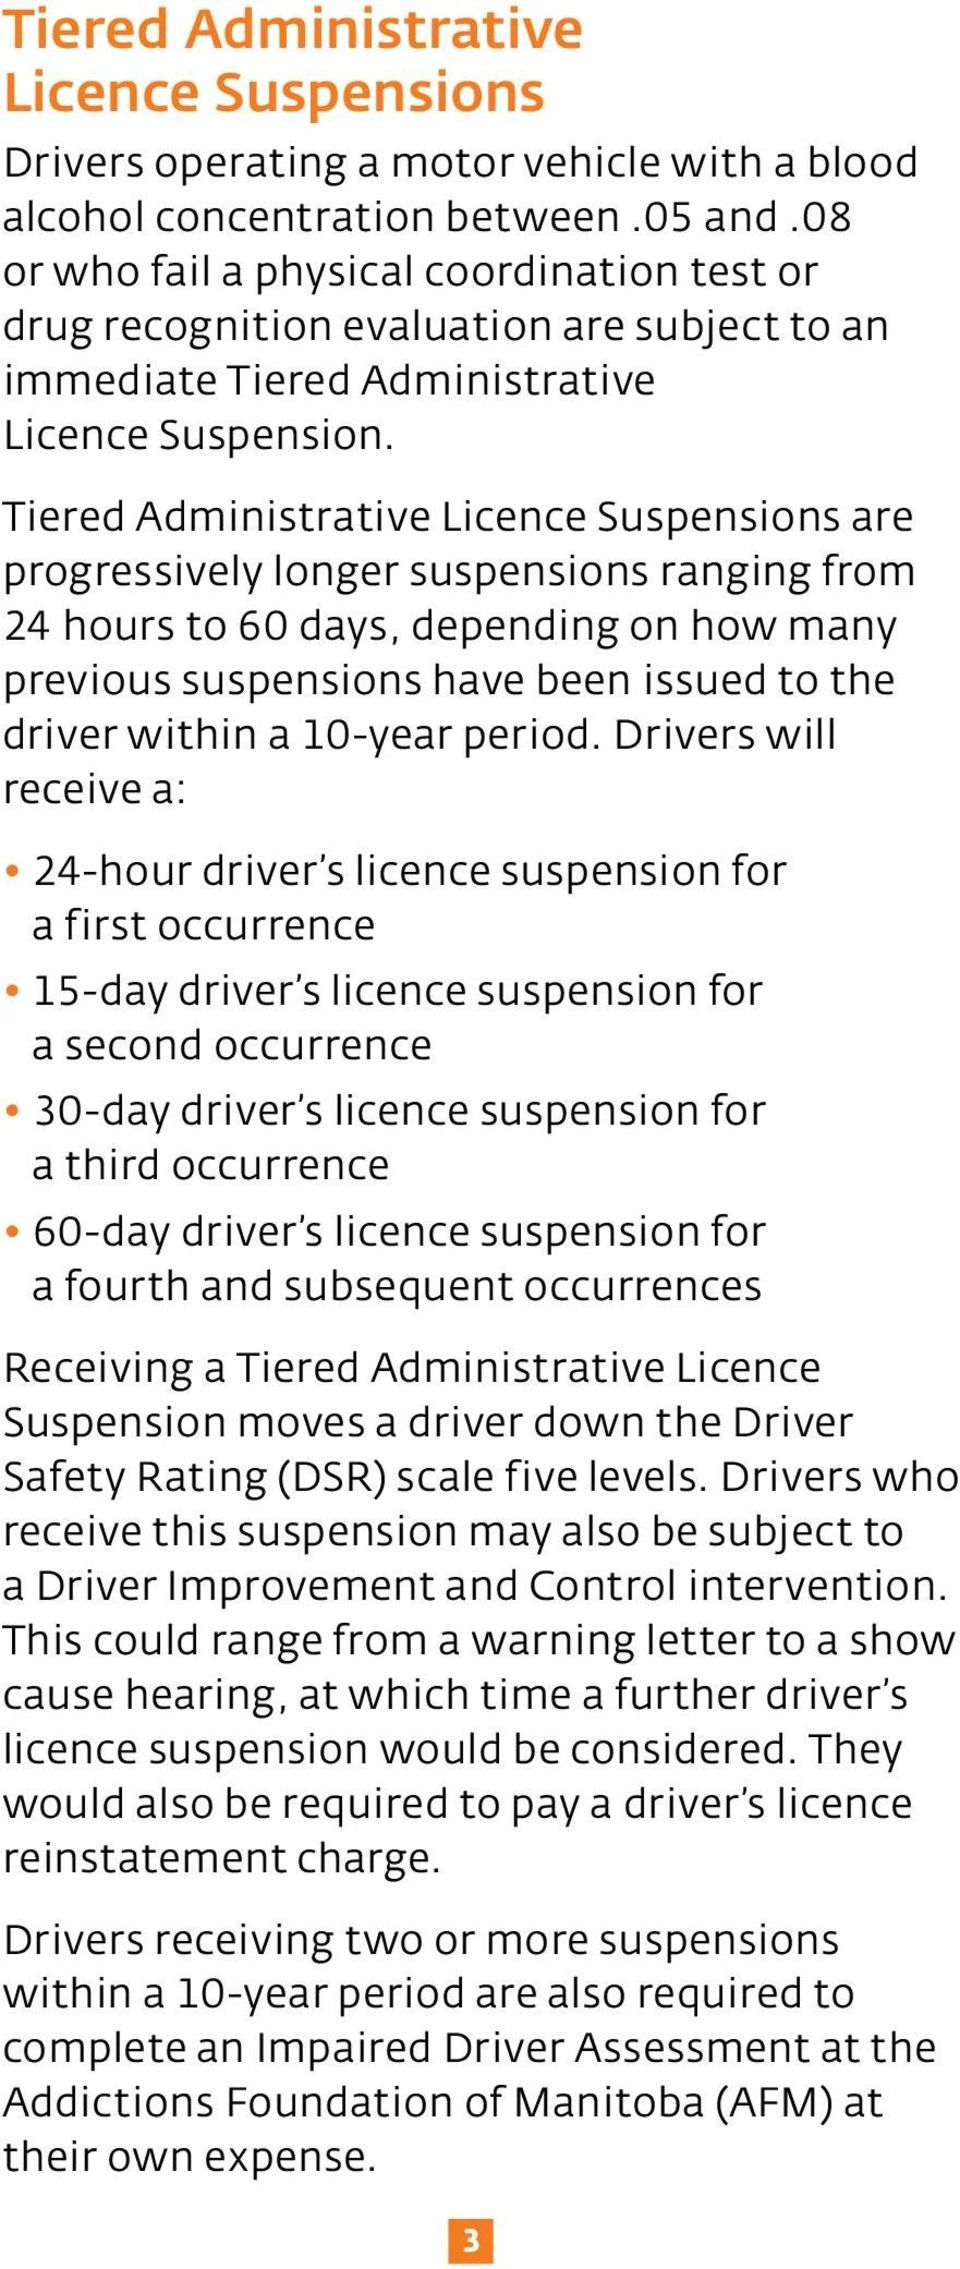 Tiered Administrative Licence Suspensions are progressively longer suspensions ranging from 24 hours to 60 days, depending on how many previous suspensions have been issued to the driver within a